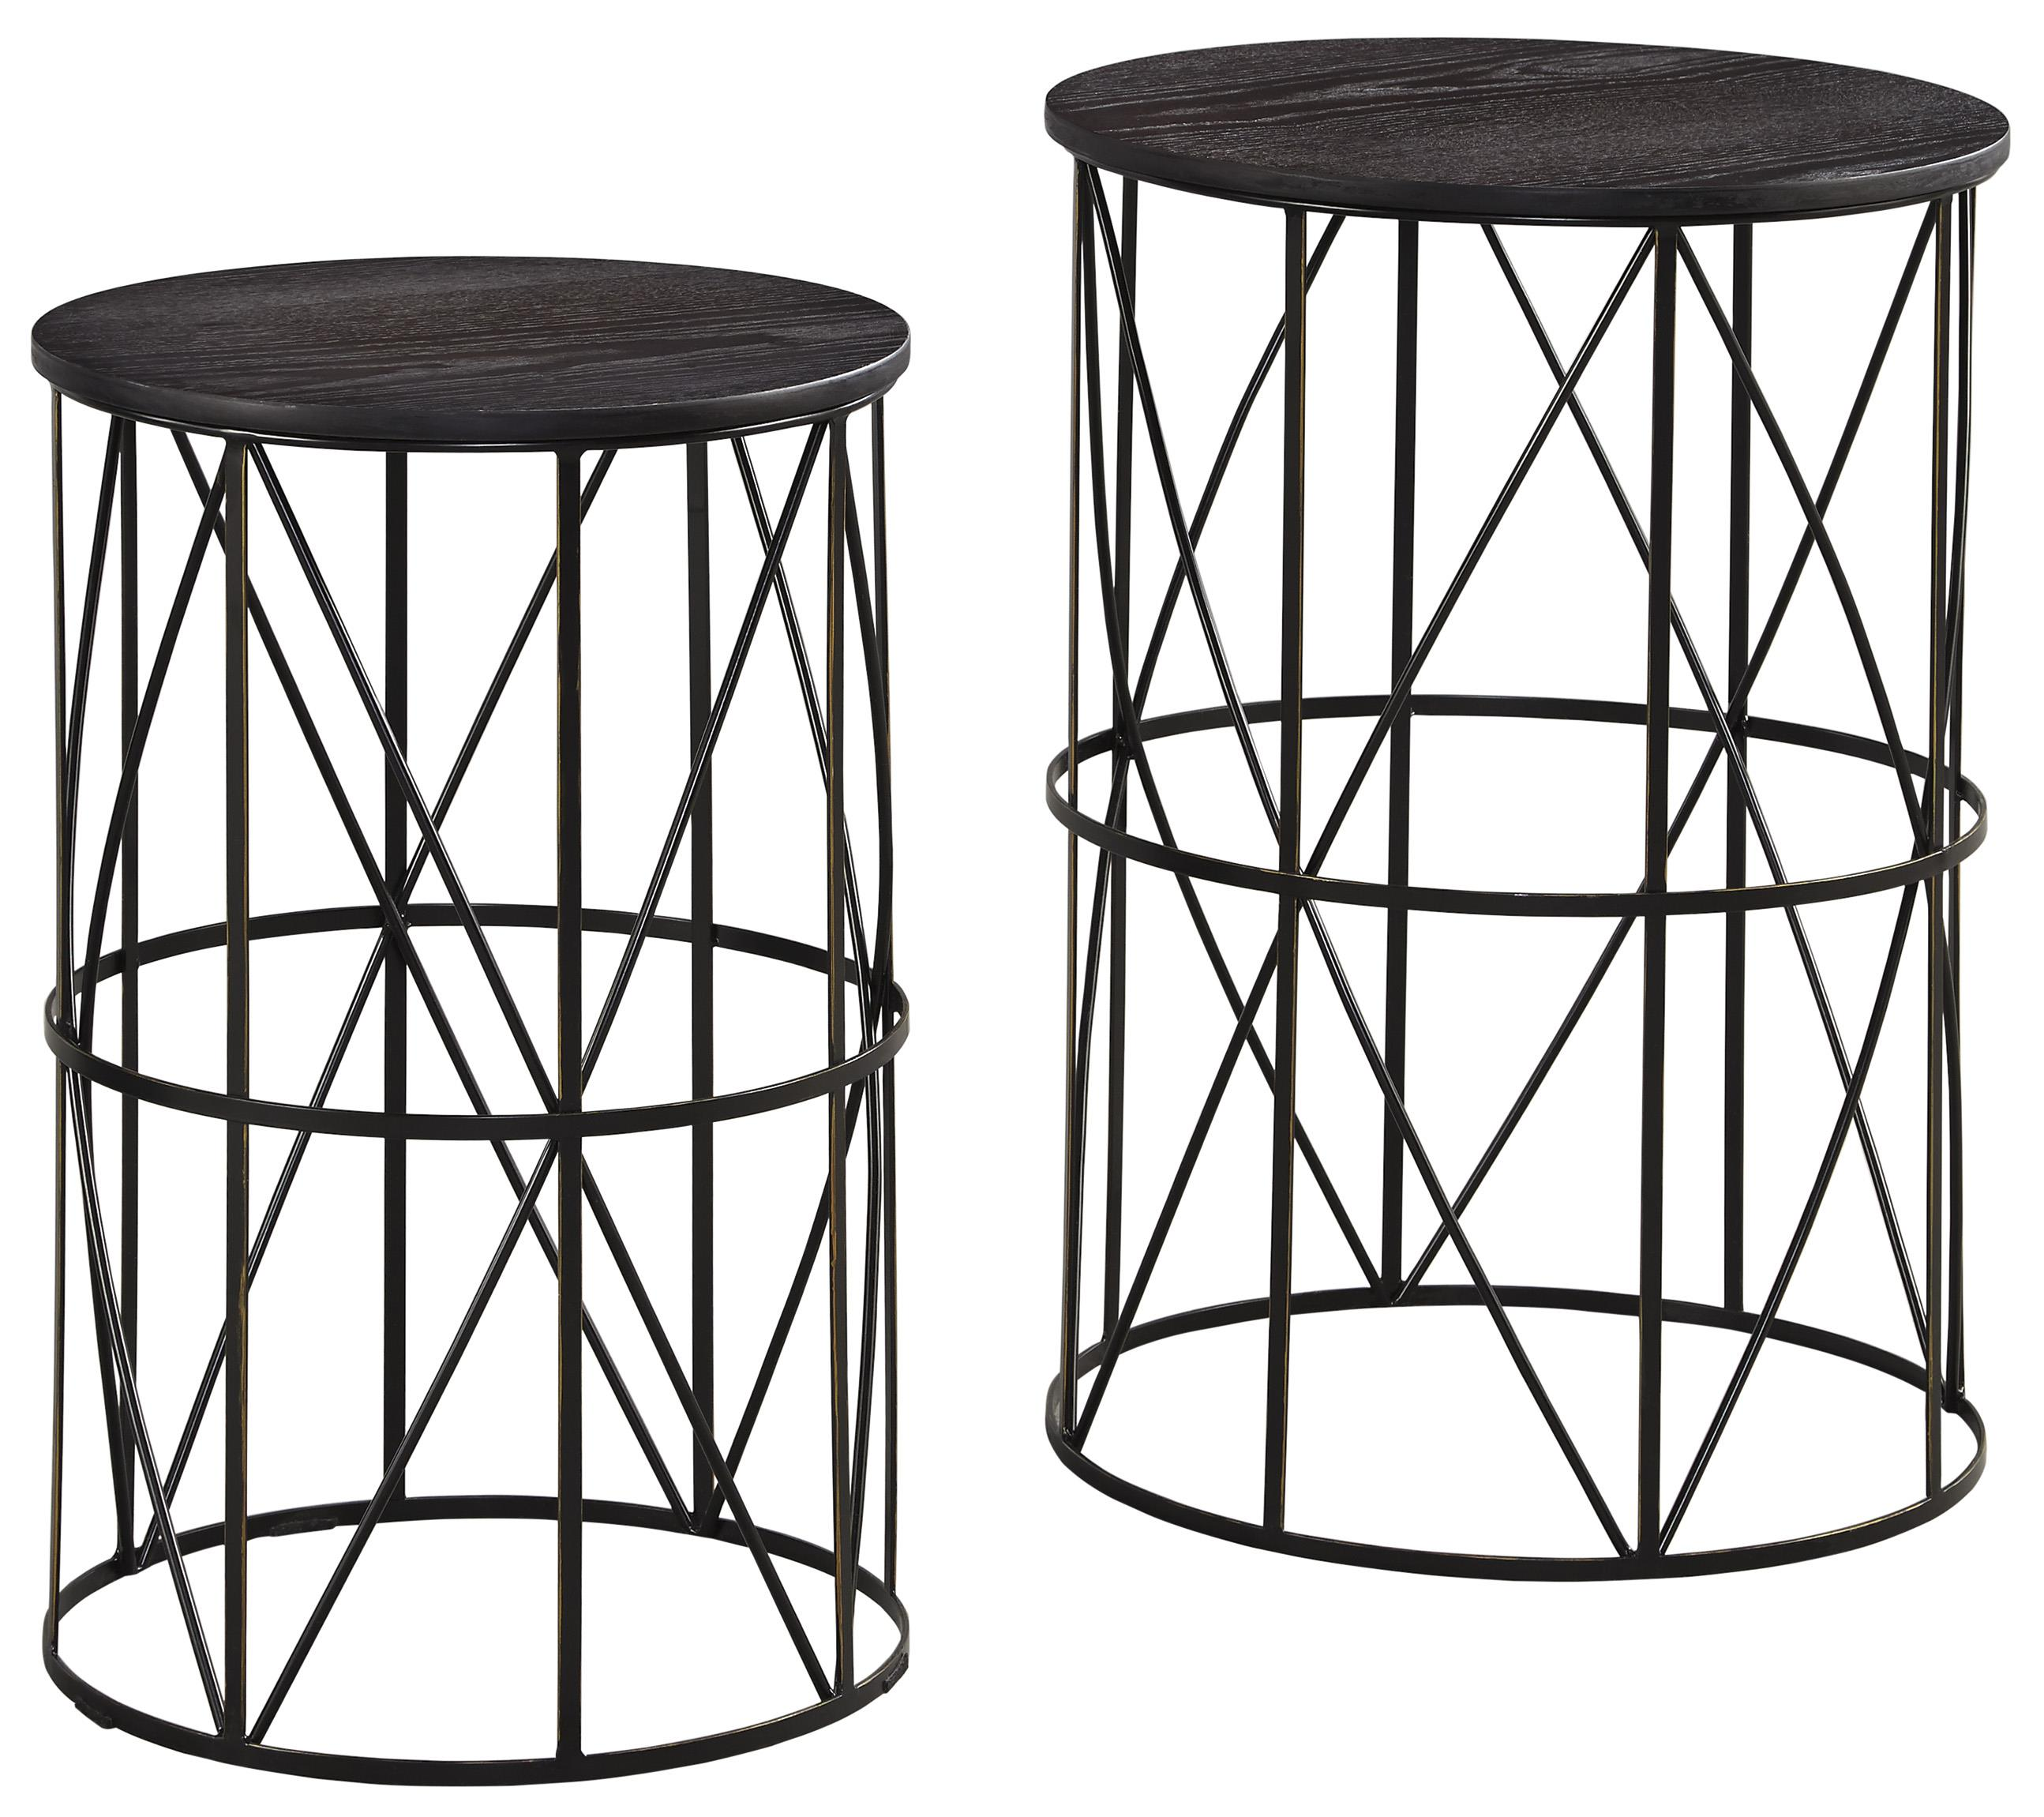 black finish wire metal nesting end tables with espresso wood products signature design ashley color marxim colored tops patio chairs hampton bay large wooden dog kennel oak and